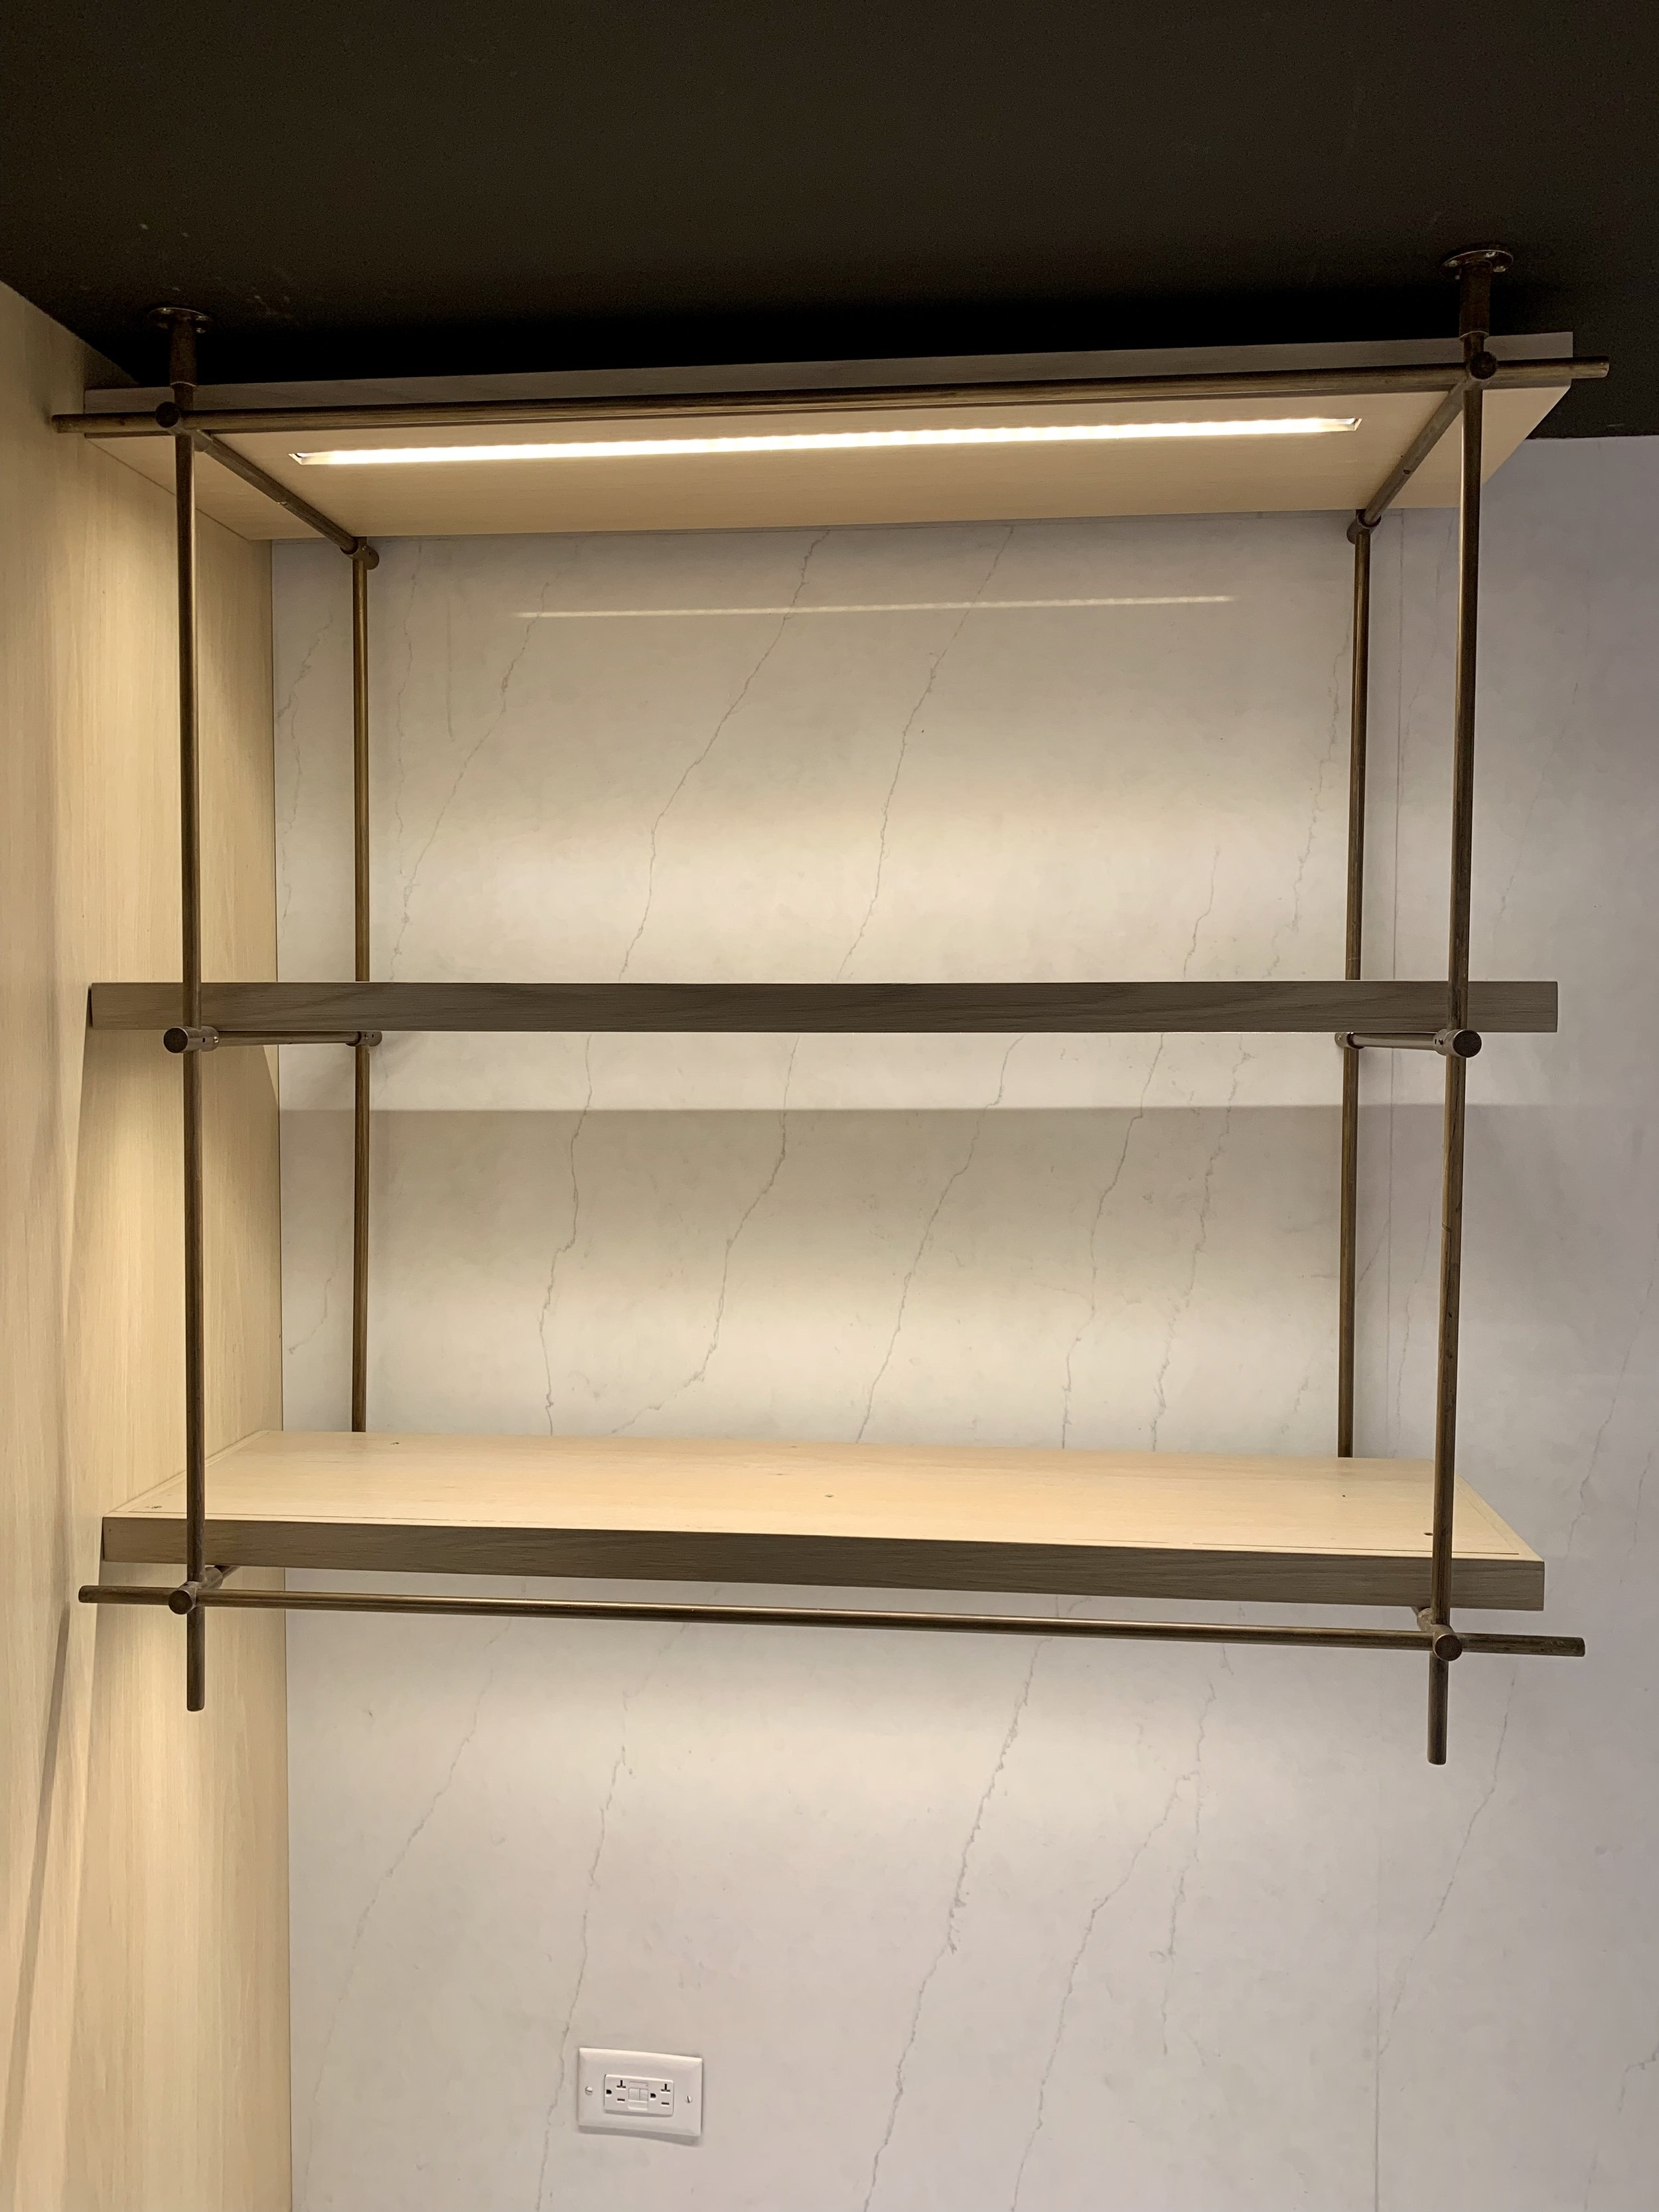 SHELF SYSTEMS - Nexise manufactures various types of custom shelving systems. Our shelving series line offers practicality, durability and full customization and are the perfect touch to any room. Blending imagination with functionality, we are able to create the perfect piece to compliment your design intent.